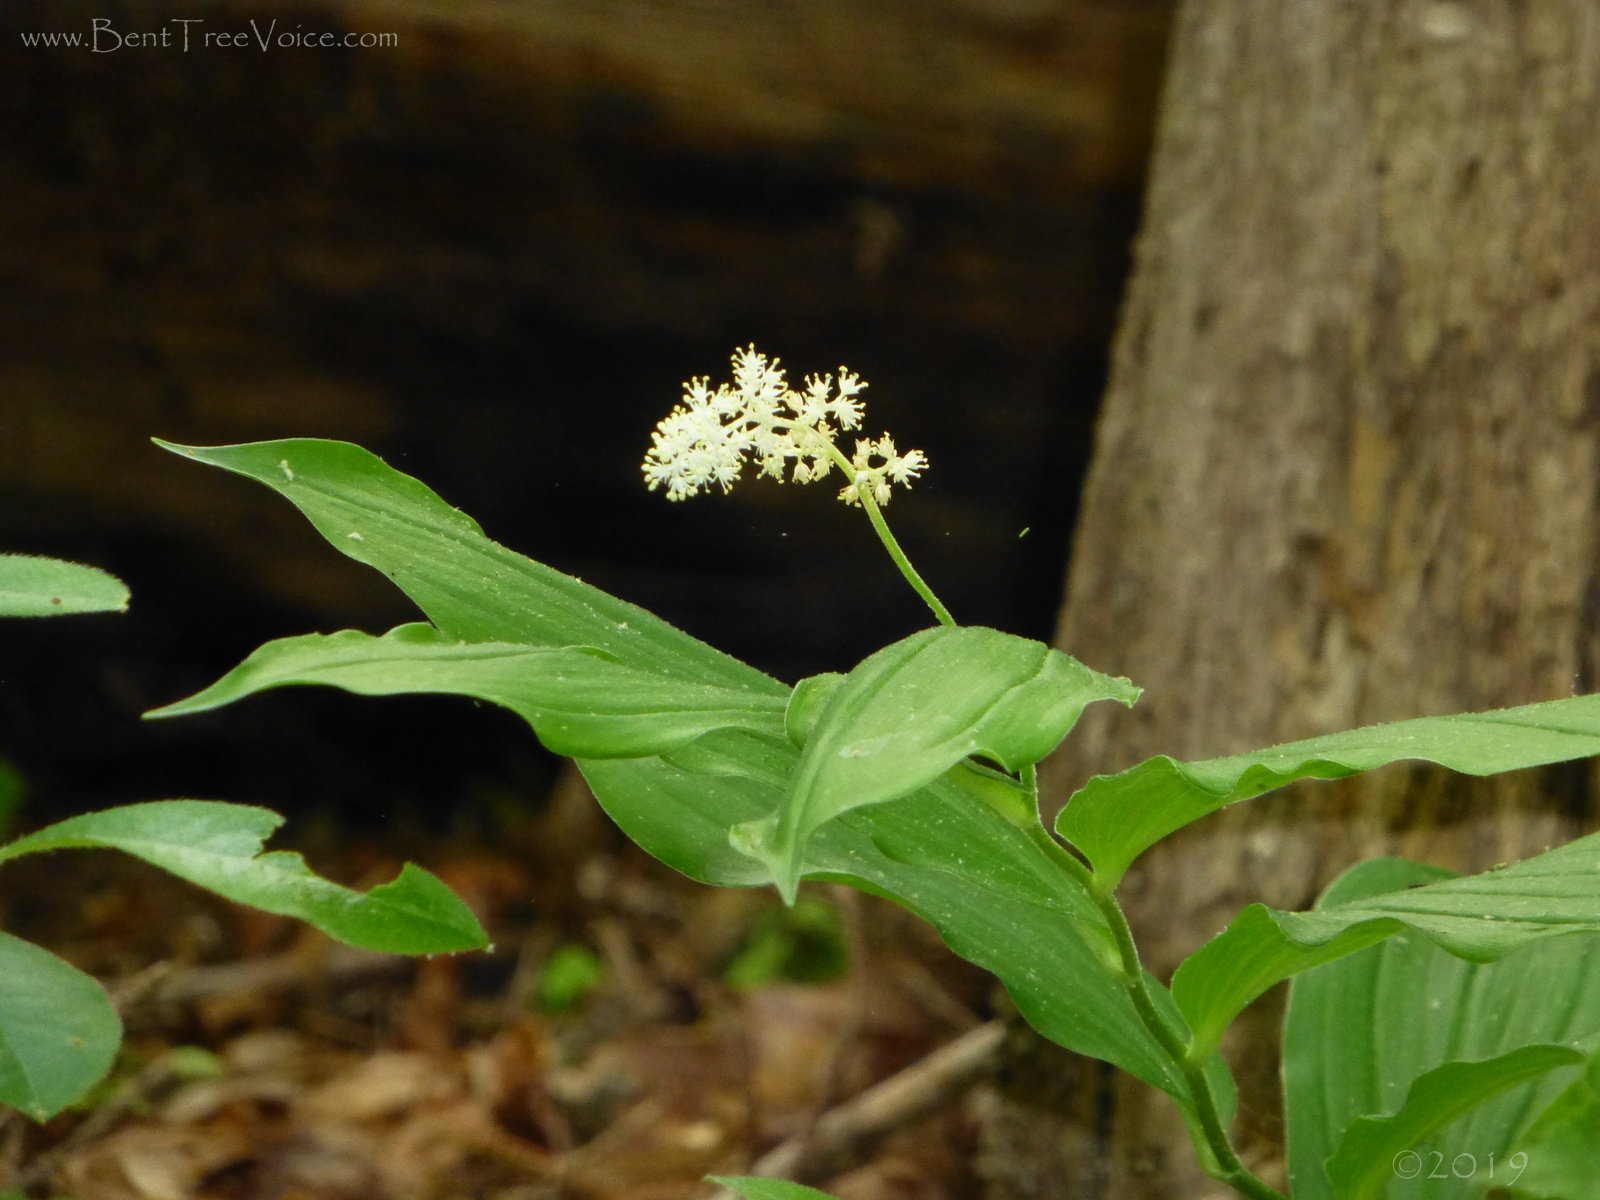 May 4, 2019 - False Solomon's Seal in Bent Tree